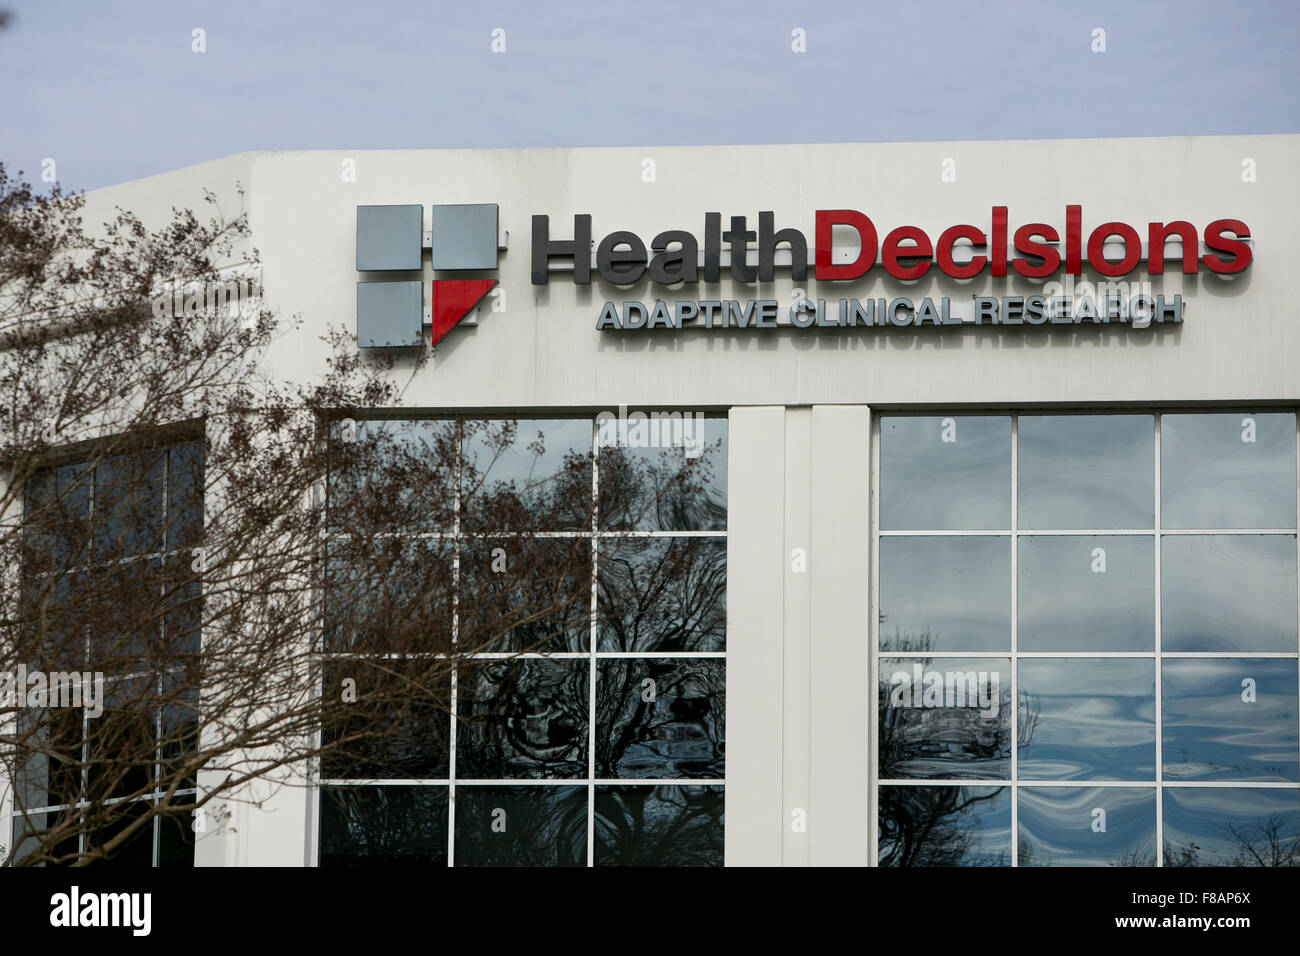 A logo sign outside of a facility occupied by Health Decisions Inc., in Durham, North Carolina on November 29, 2015. - Stock Image